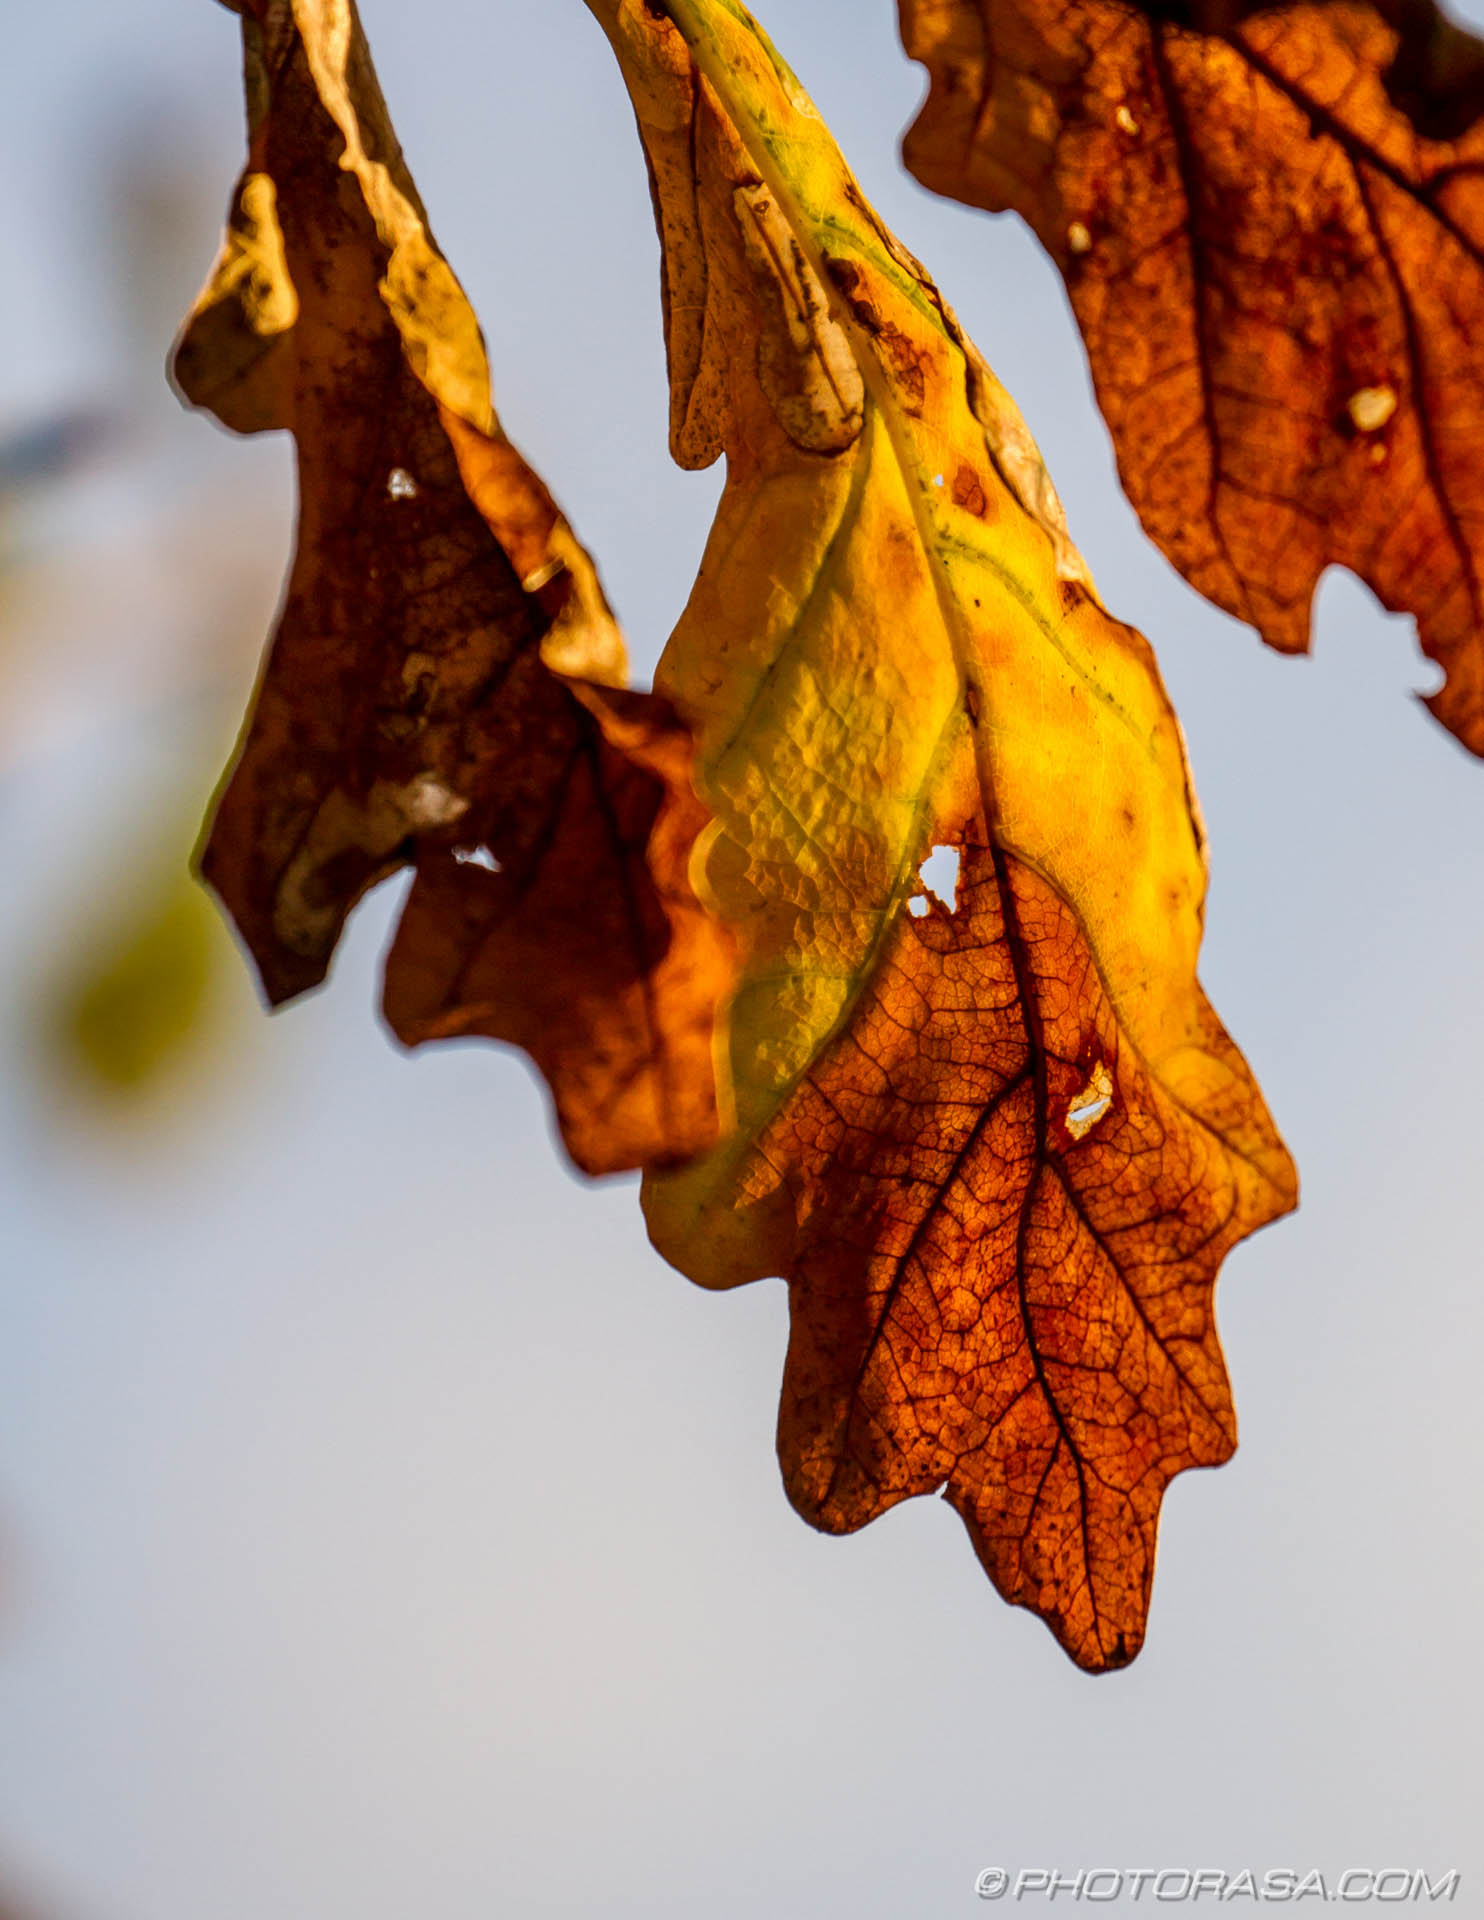 http://photorasa.com/autumn-leaves/brown-and-yellow-oak-leaves/